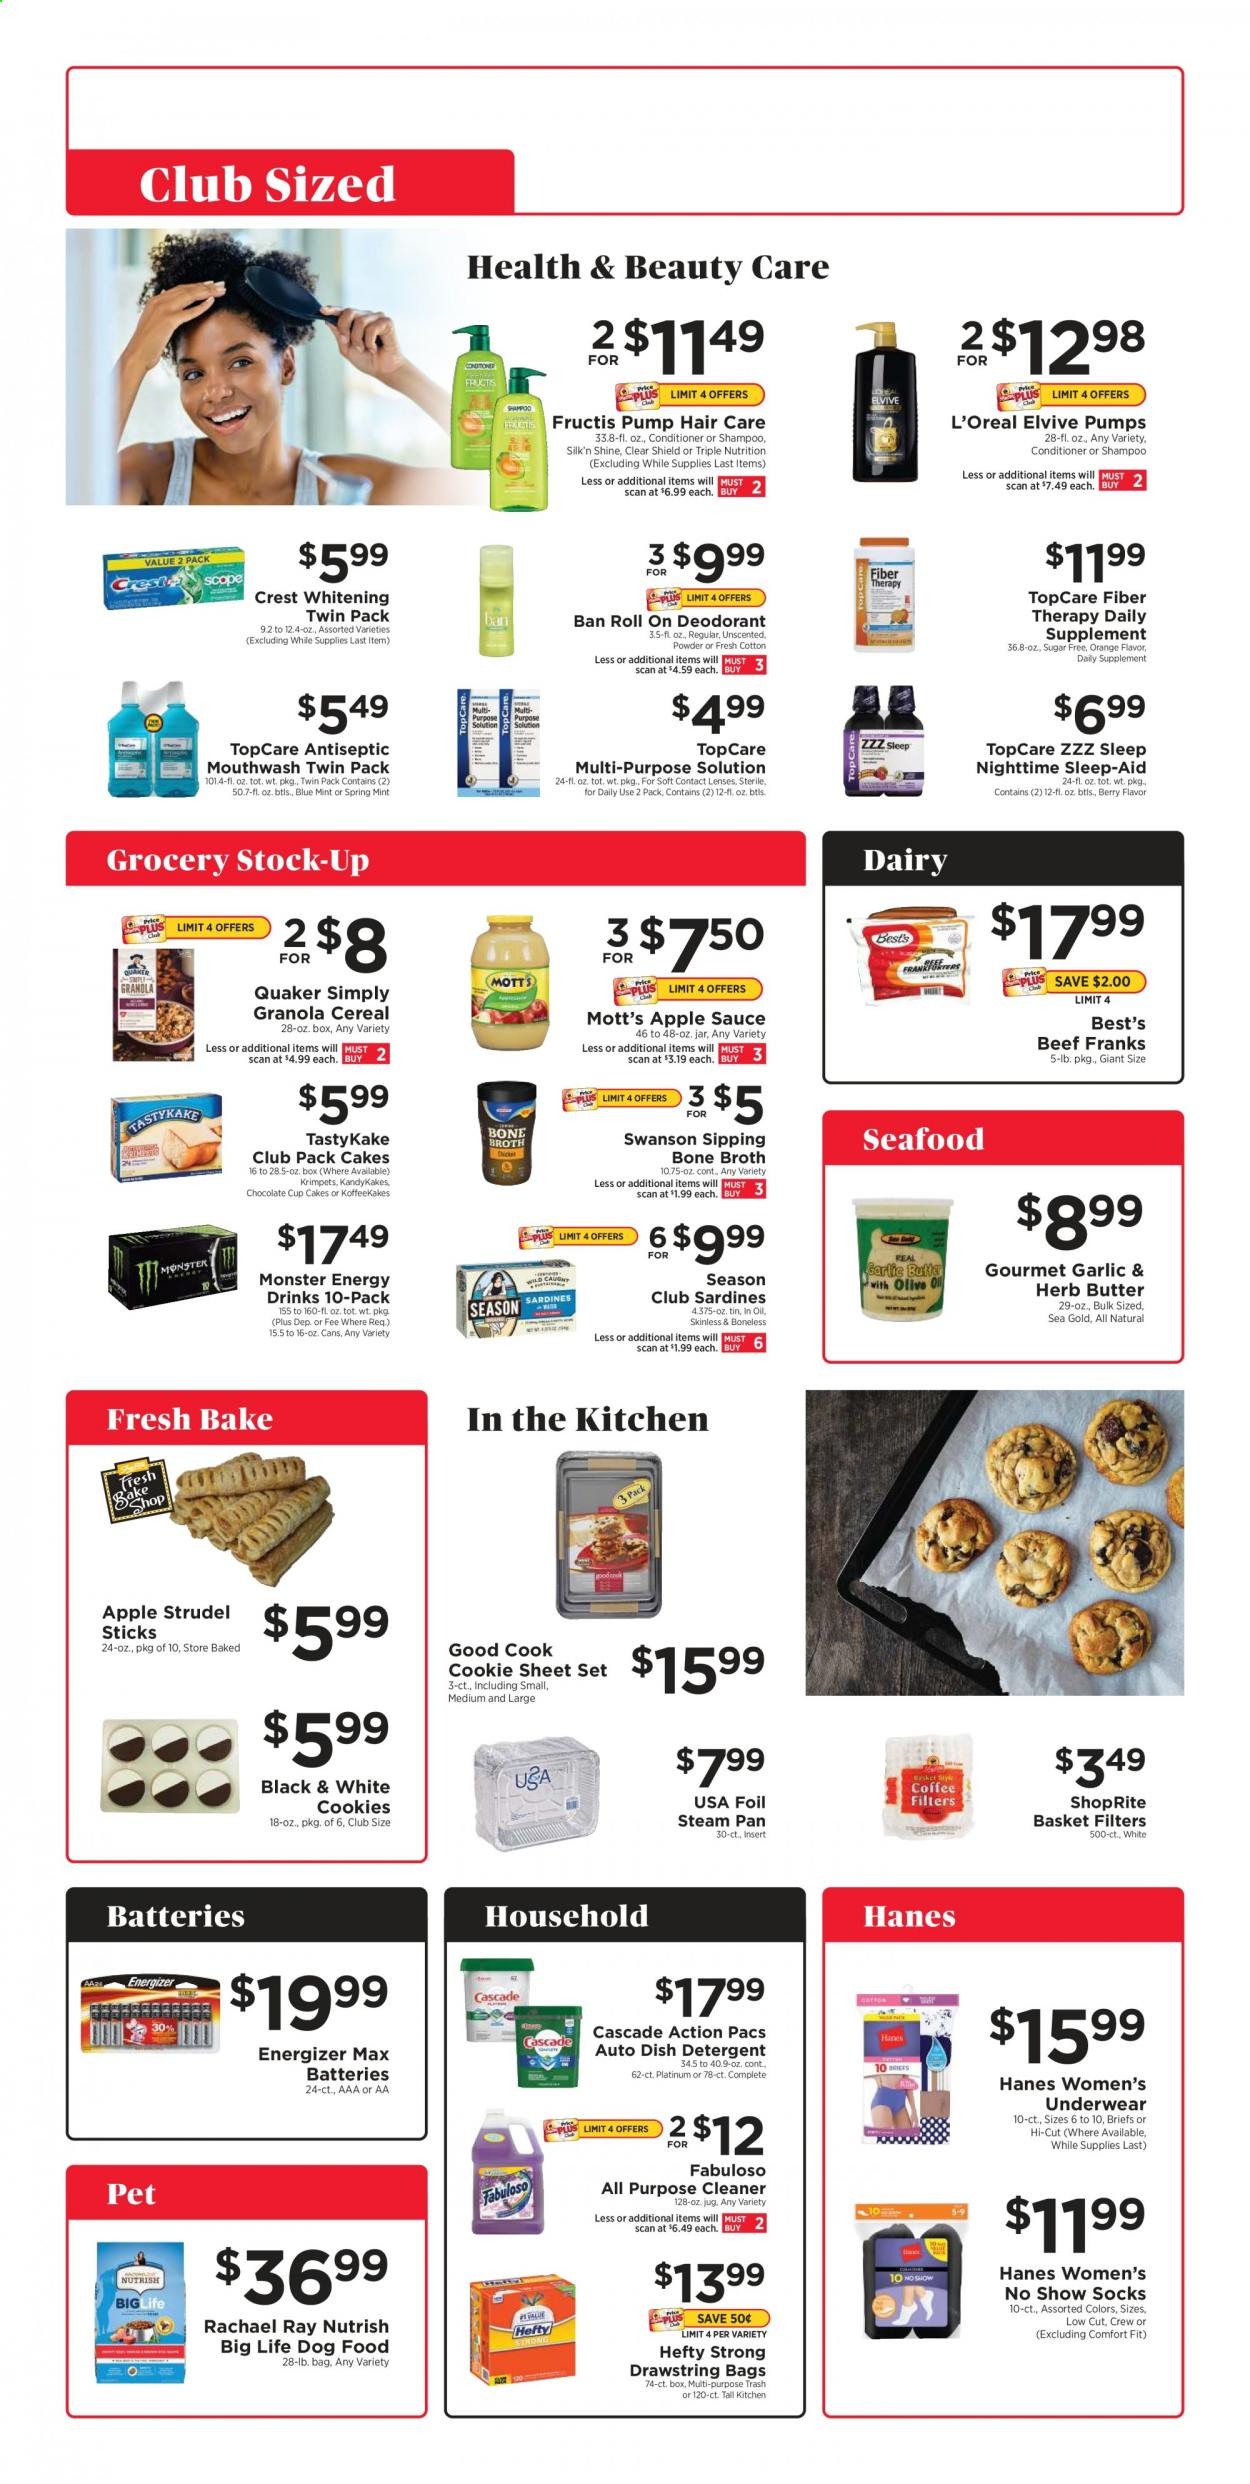 ShopRite Club Sized Ad from april 25 to may 22 2021